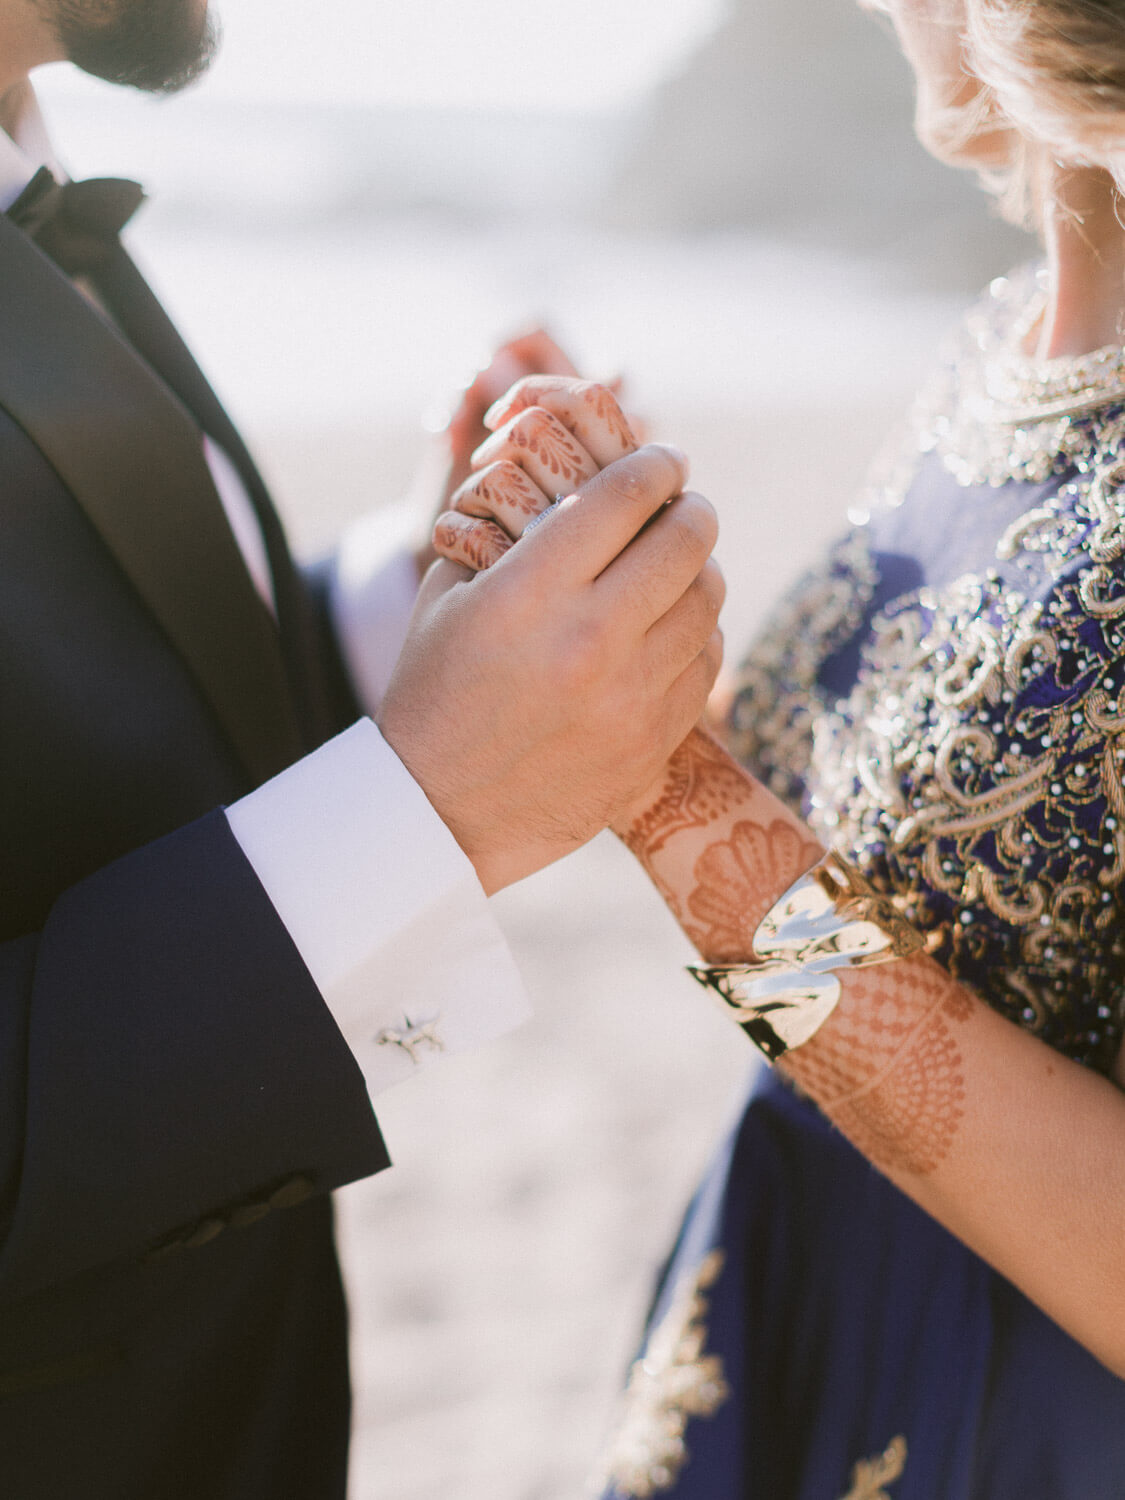 Hindu Bride and Groom holding hands detail by Portugal Wedding Photographer